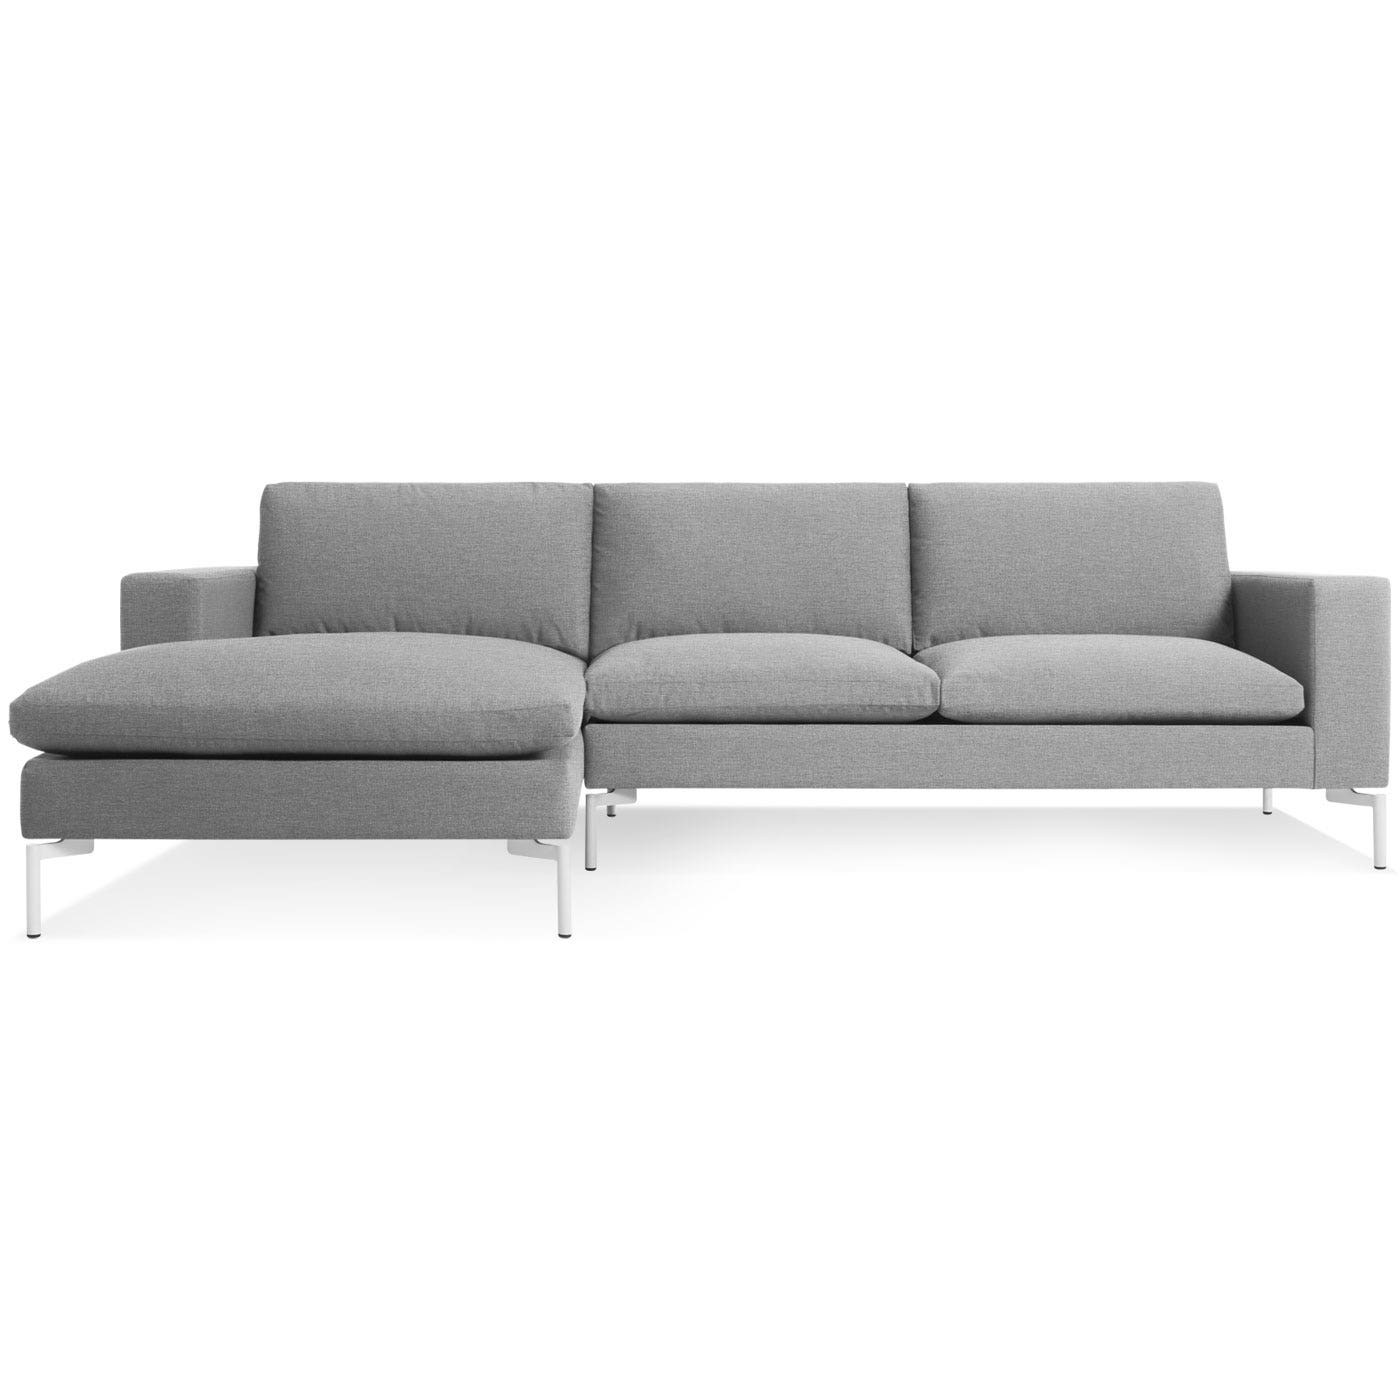 New Standard Sofa w/ Left Arm Chaise - Modern Sofas and ...